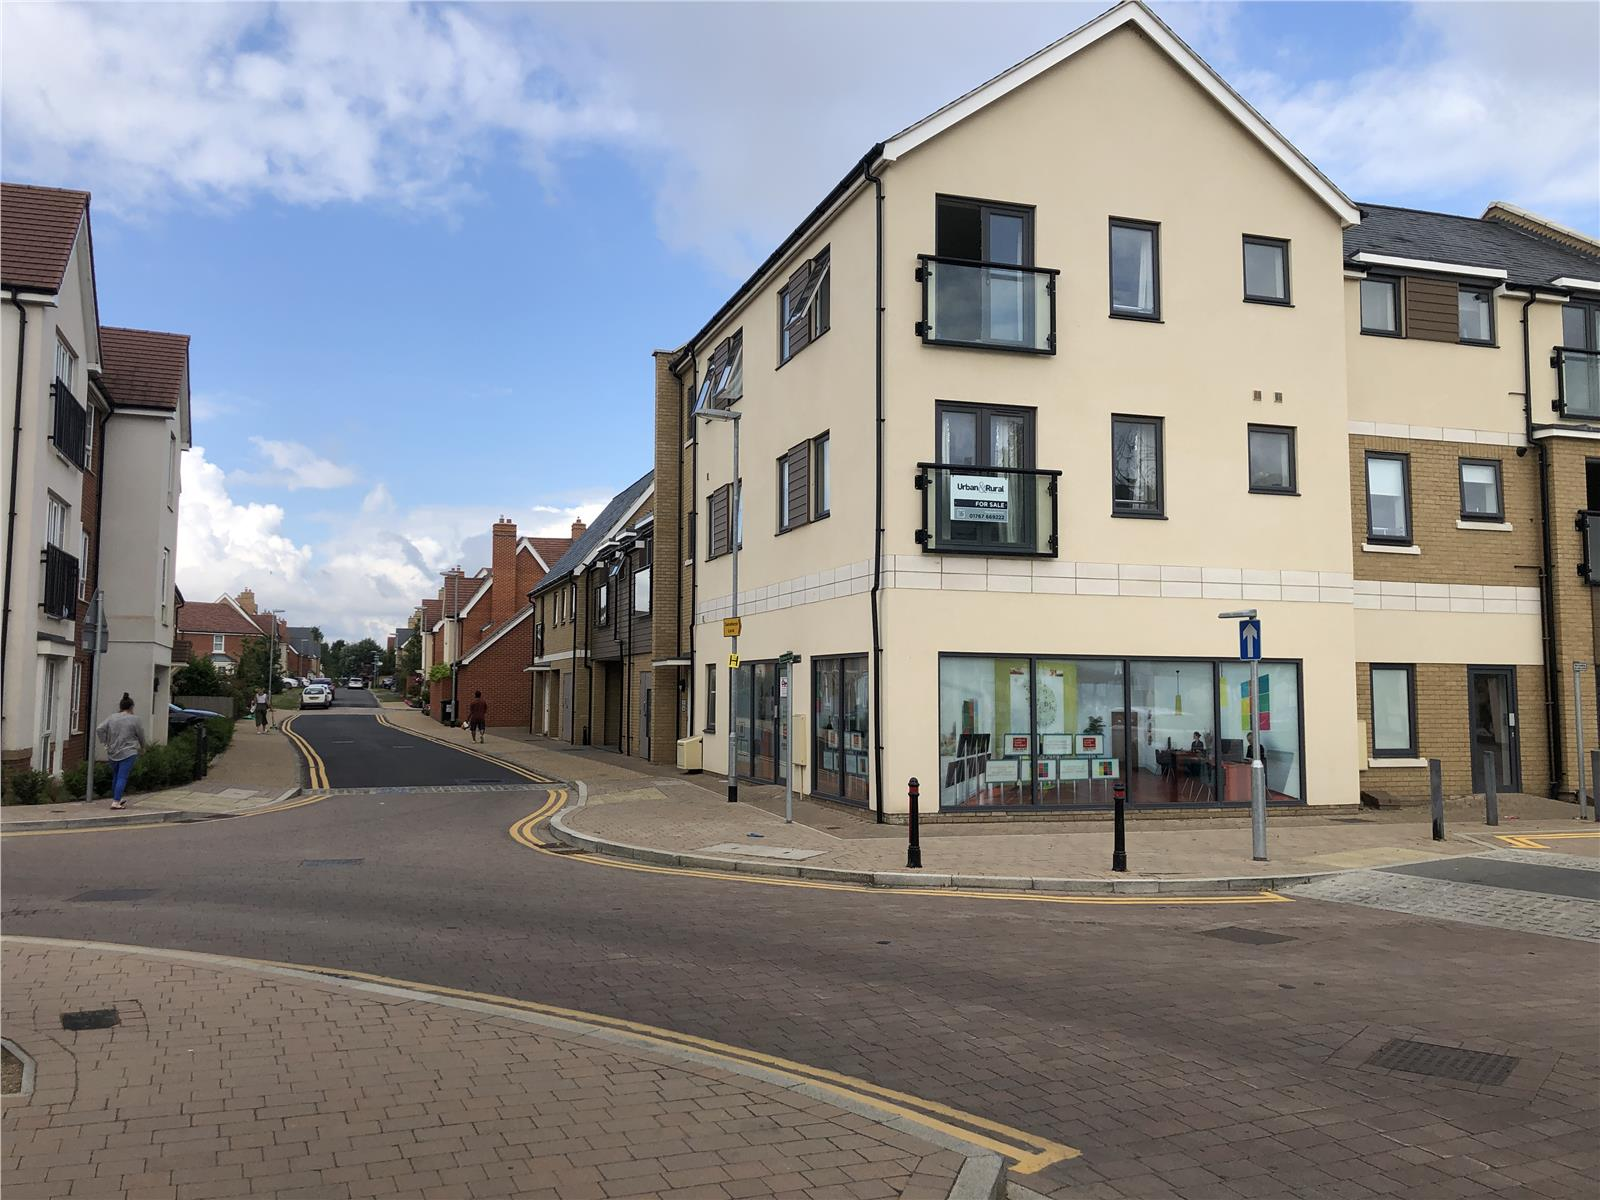 366 Central Square (offices), Kings Reach, Biggleswade, Bedfordshire, SG18